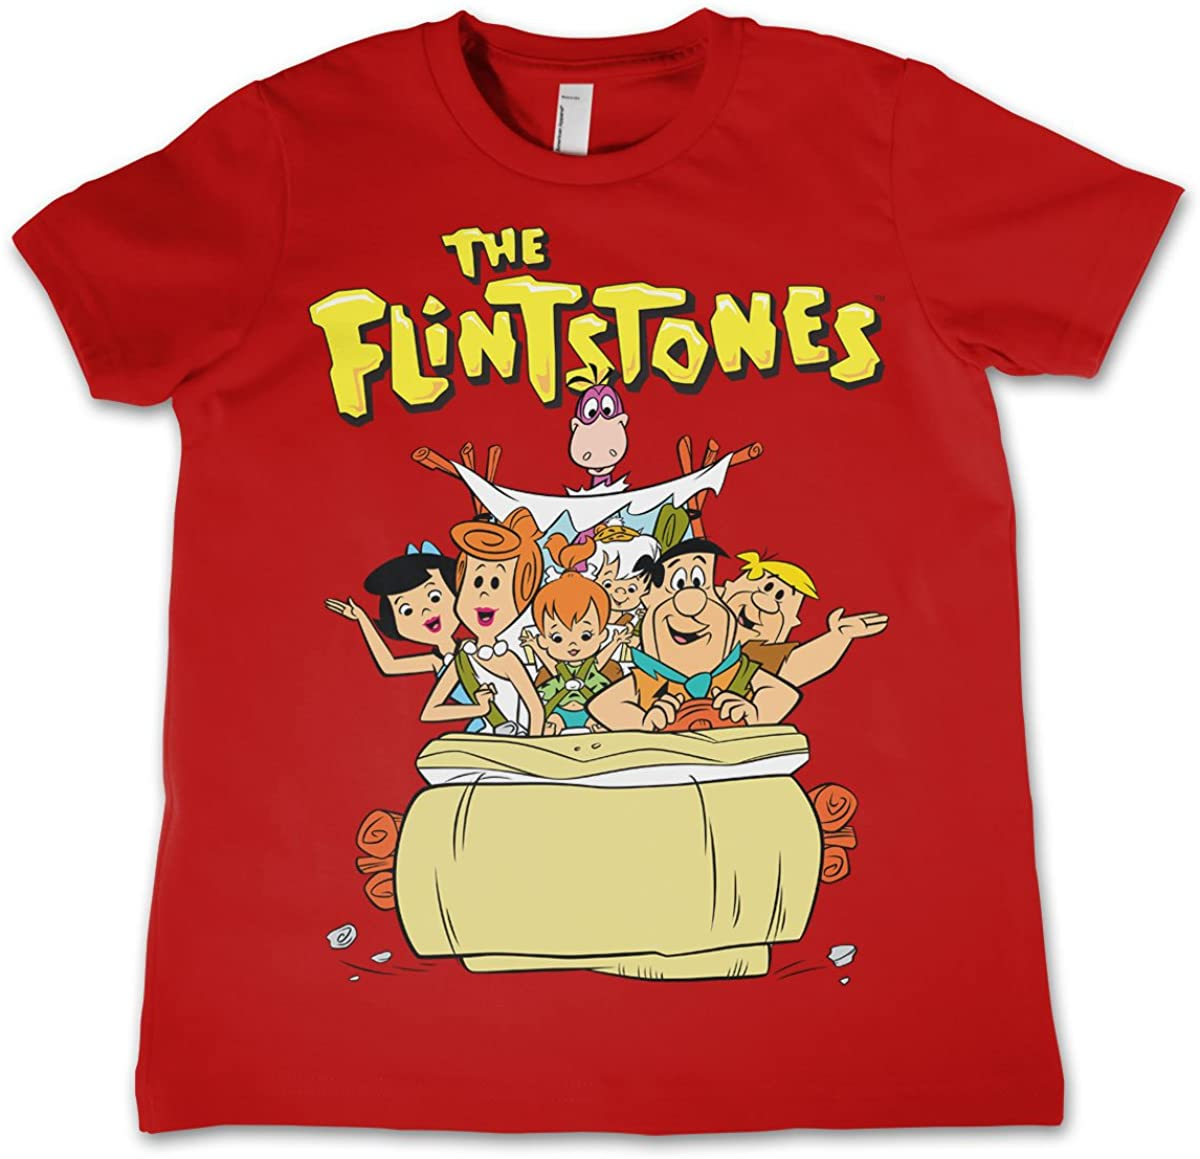 Flintstones Officially Licensed The Unisex Kids T-Shirt Ages 3-12 Years